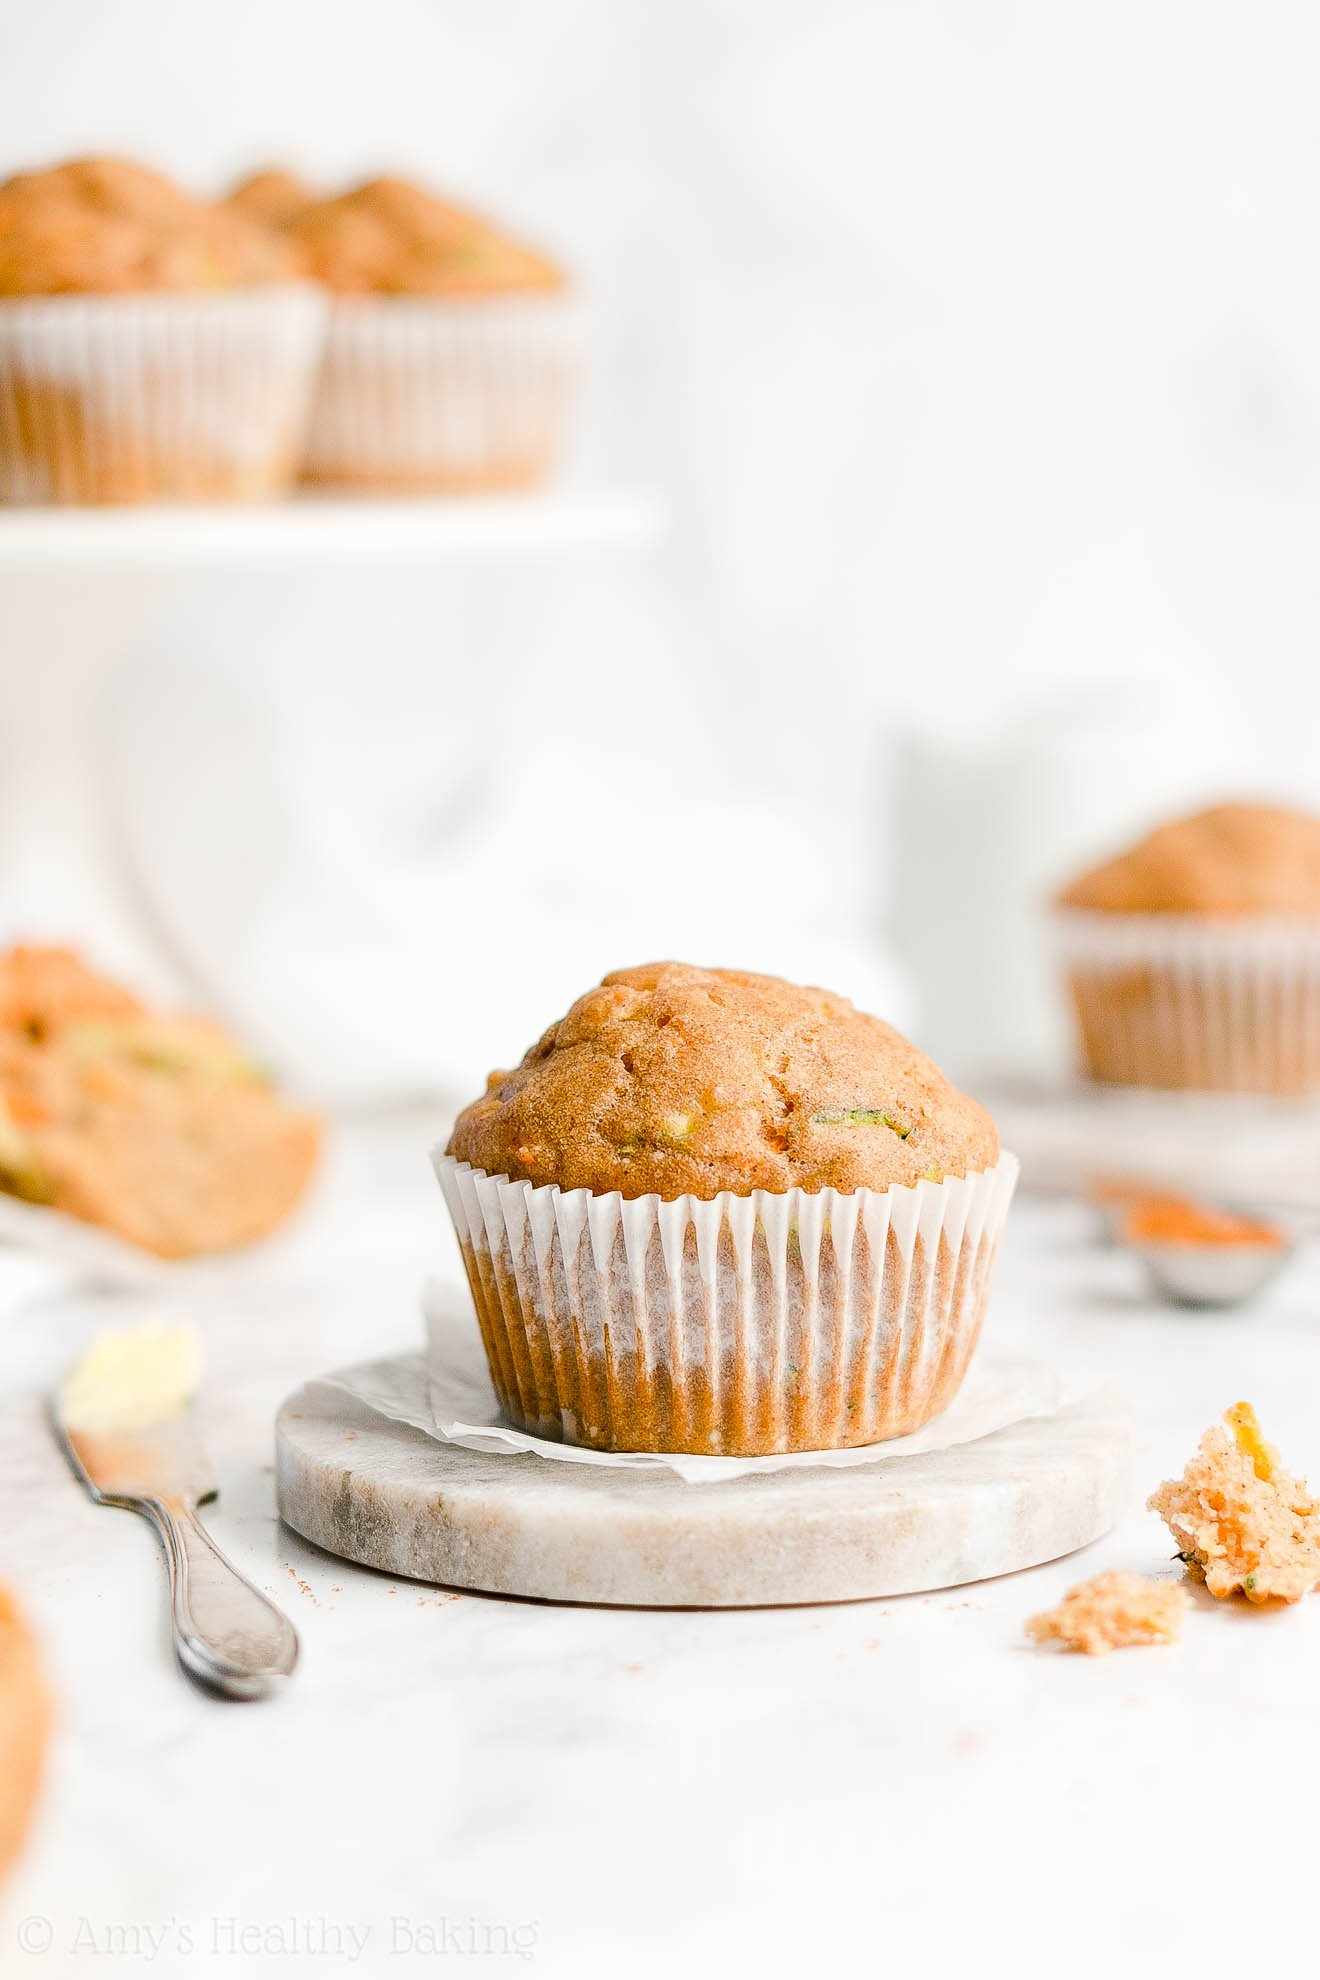 Easy Healthy Clean Eating Sugar Free Moist Spiced Carrot Zucchini Muffins